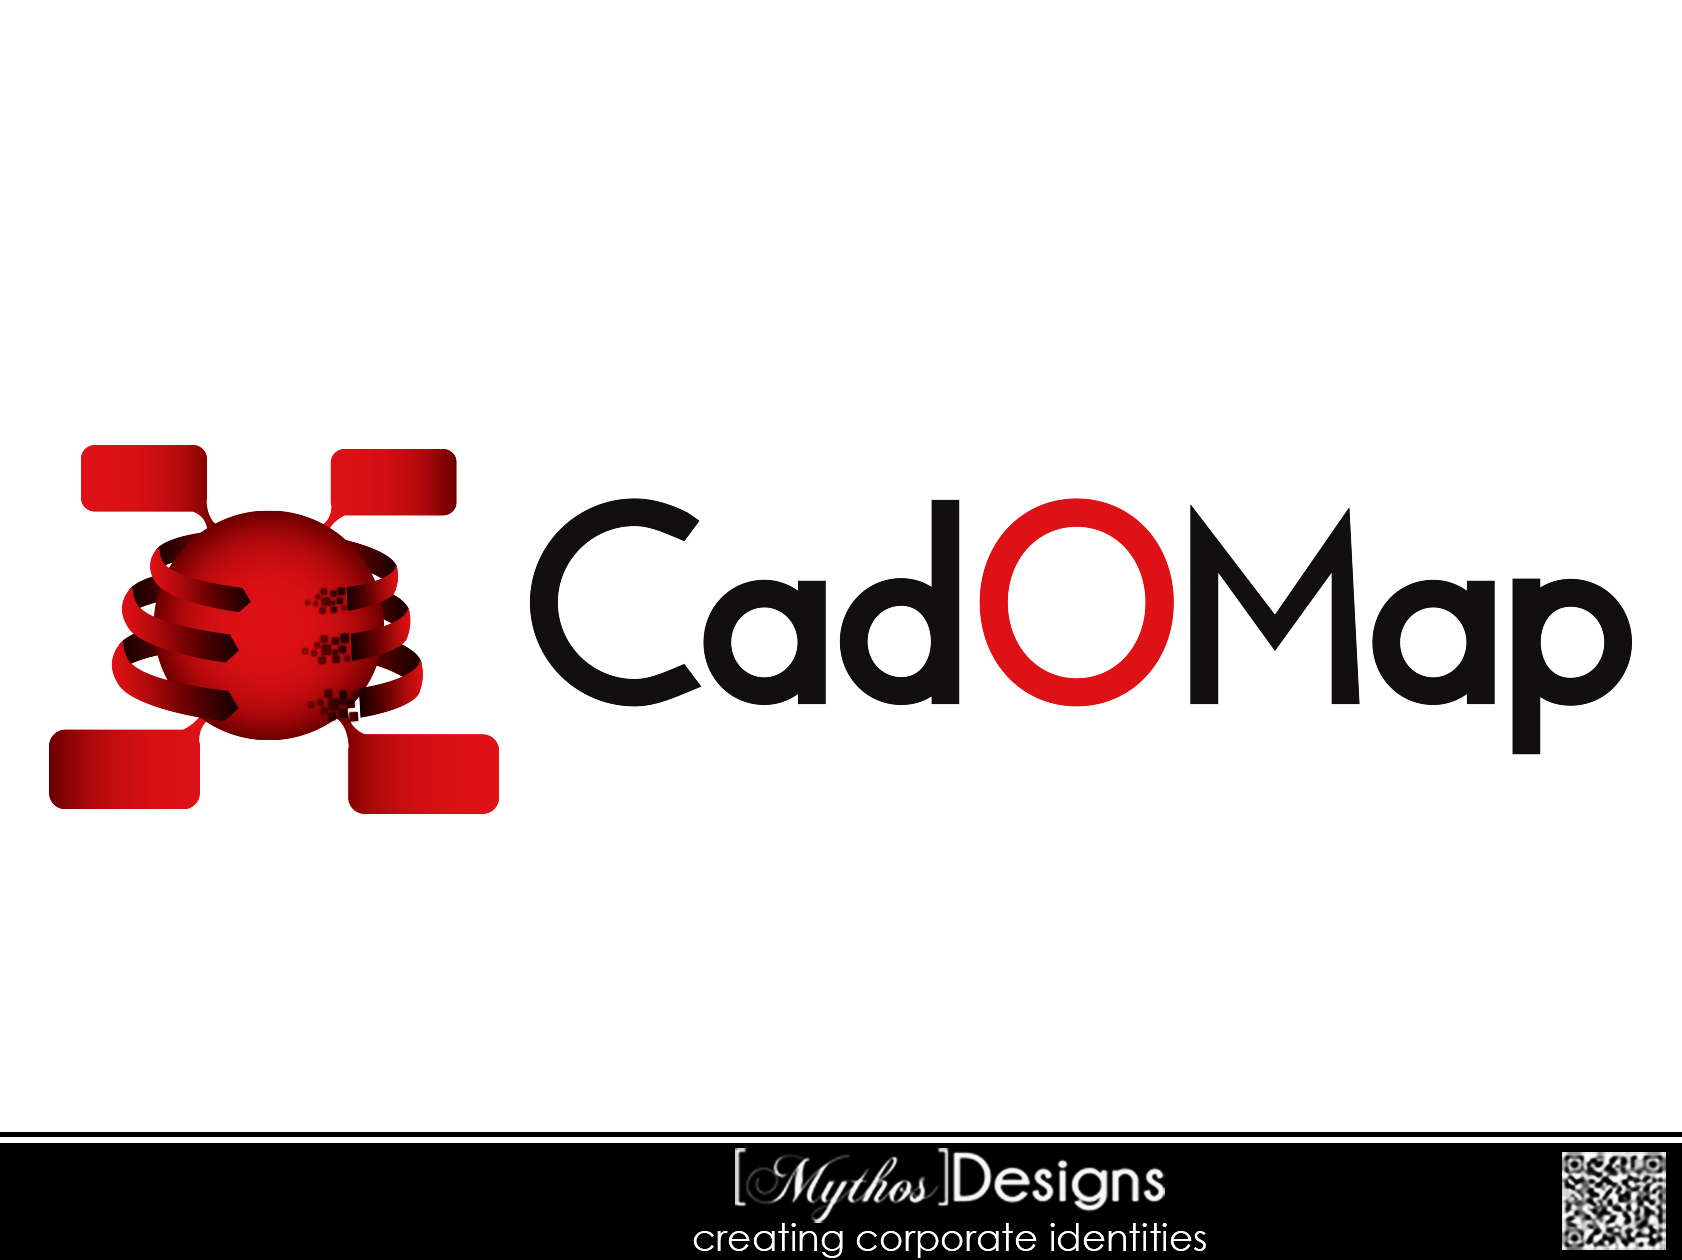 Logo Design by Mythos Designs - Entry No. 75 in the Logo Design Contest Captivating Logo Design for CadOMap software product.